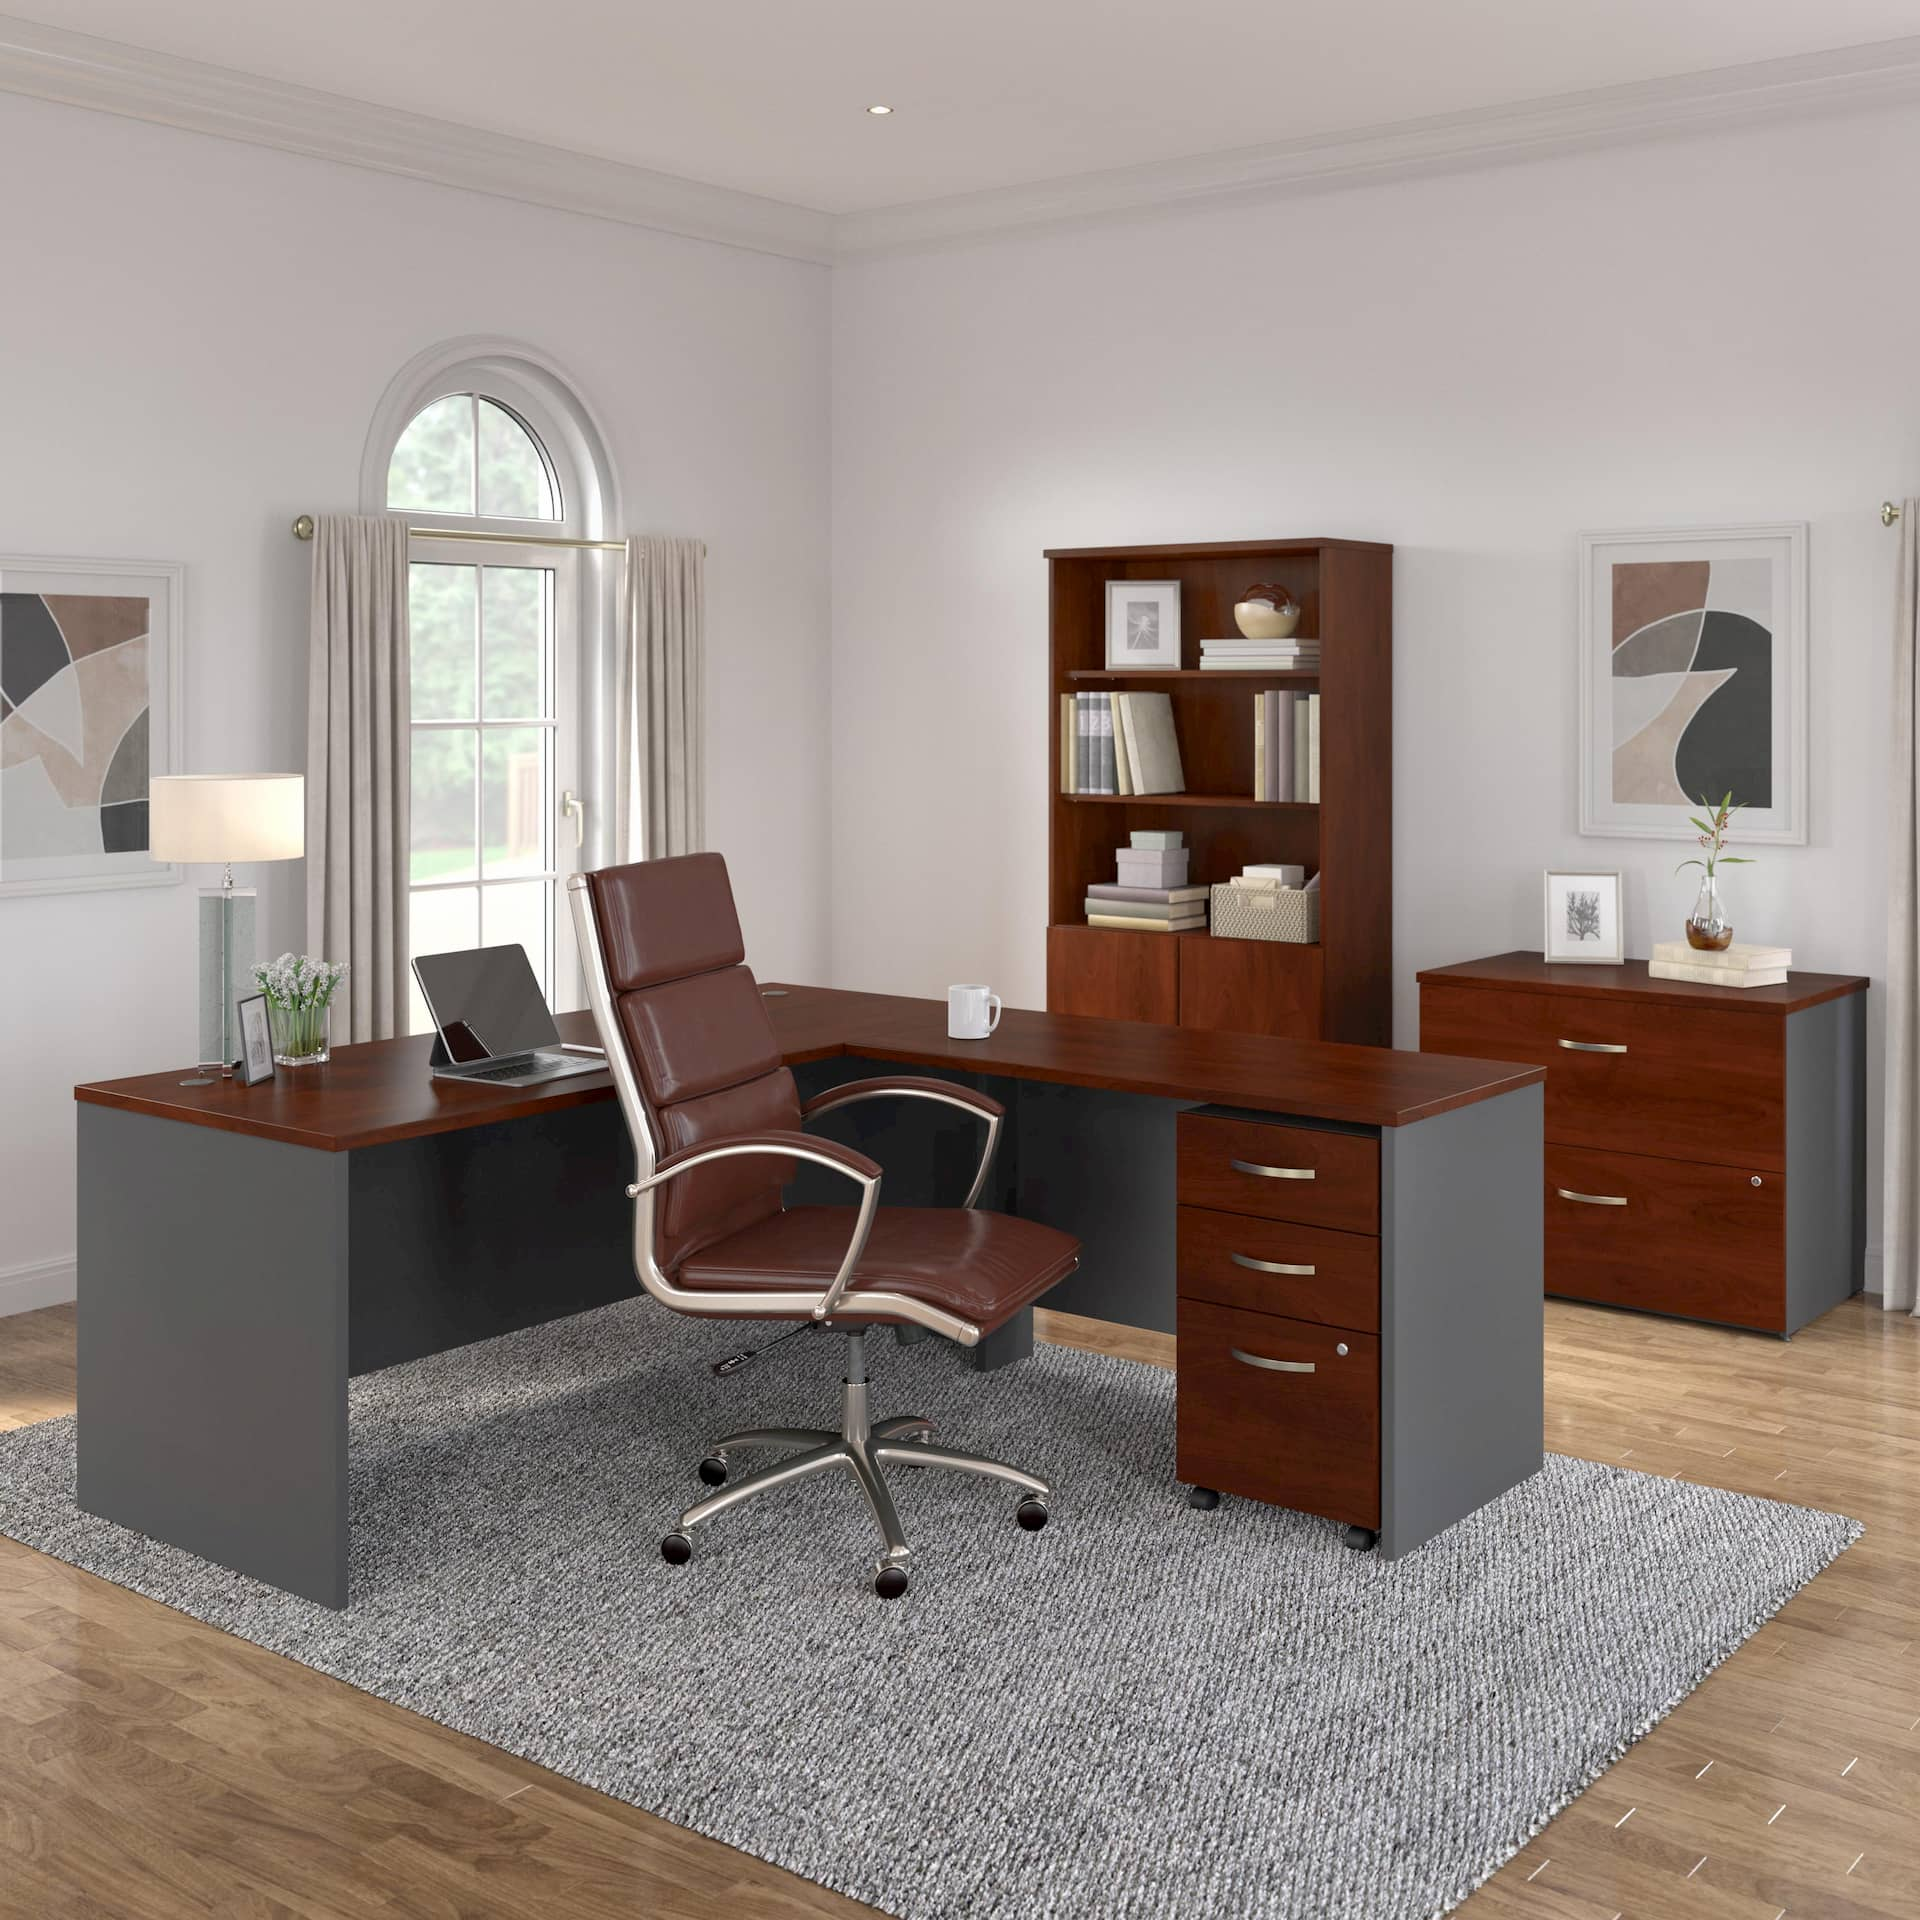 home-office-image